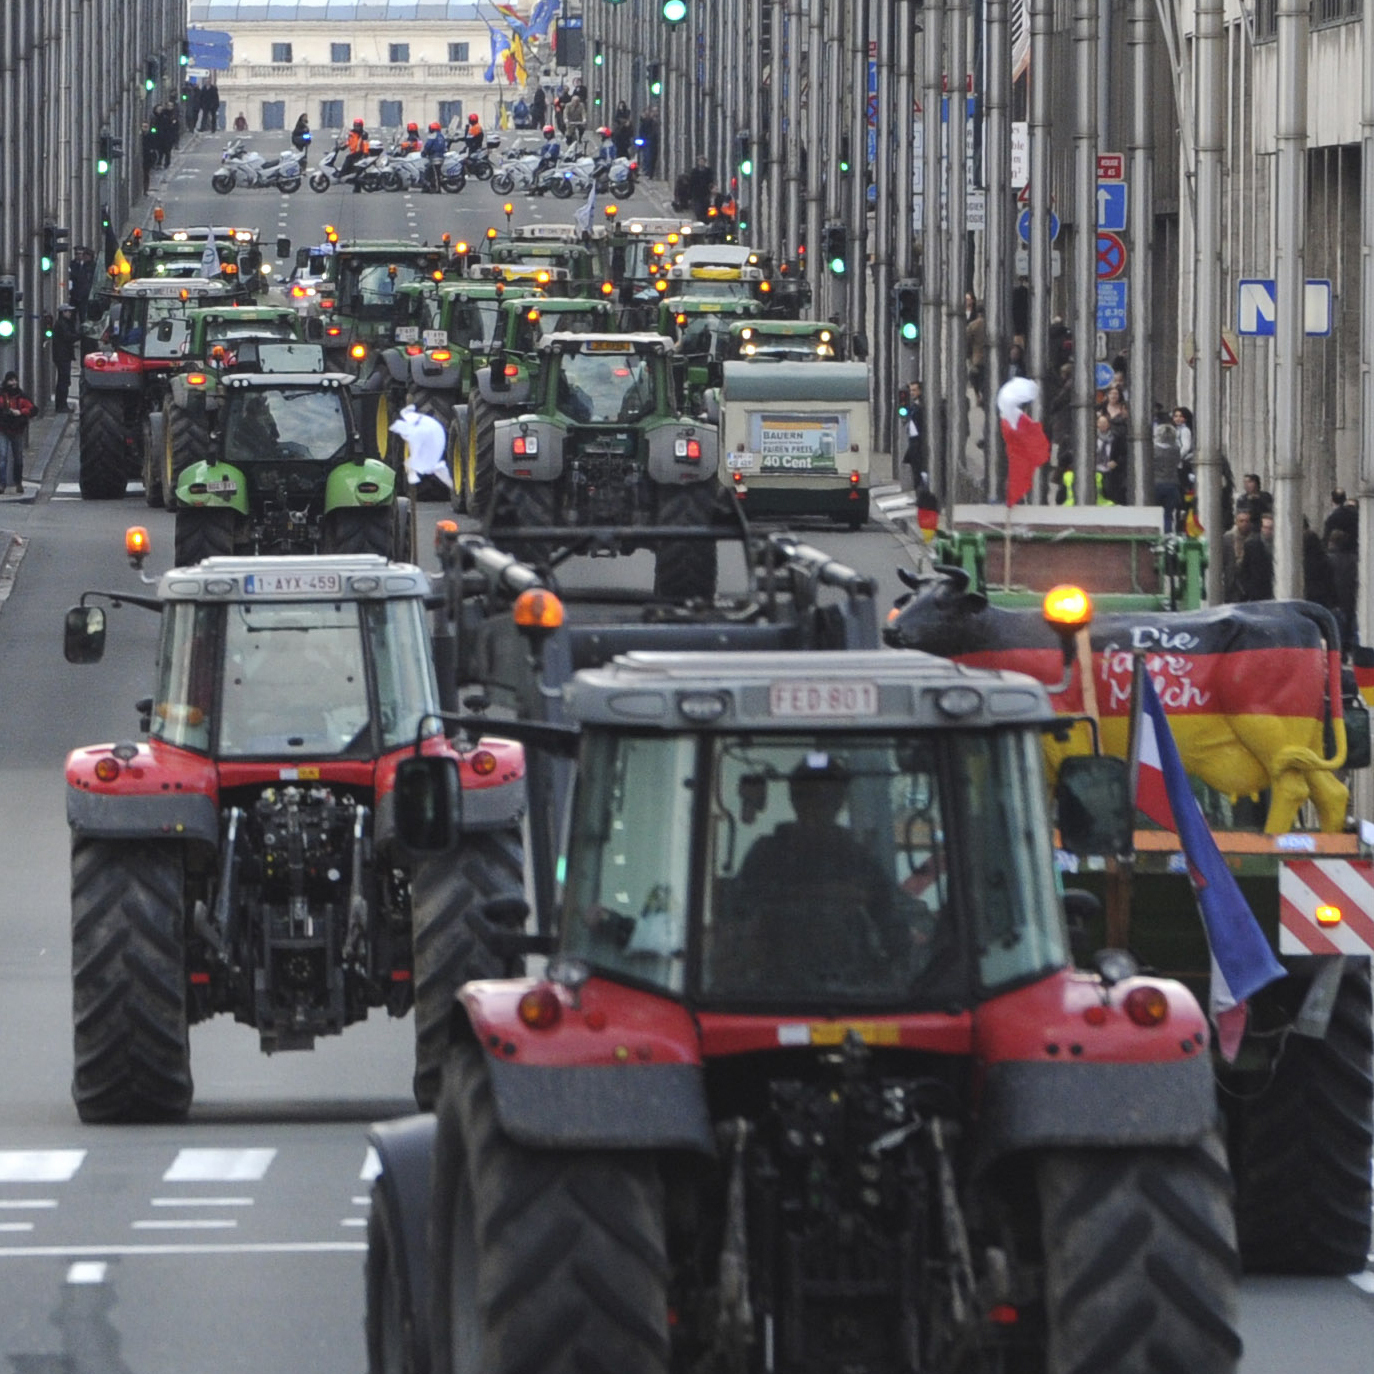 European milk farmers drive their tractors down a main thoroughfare in the European Quarter of Brussels on Monday.